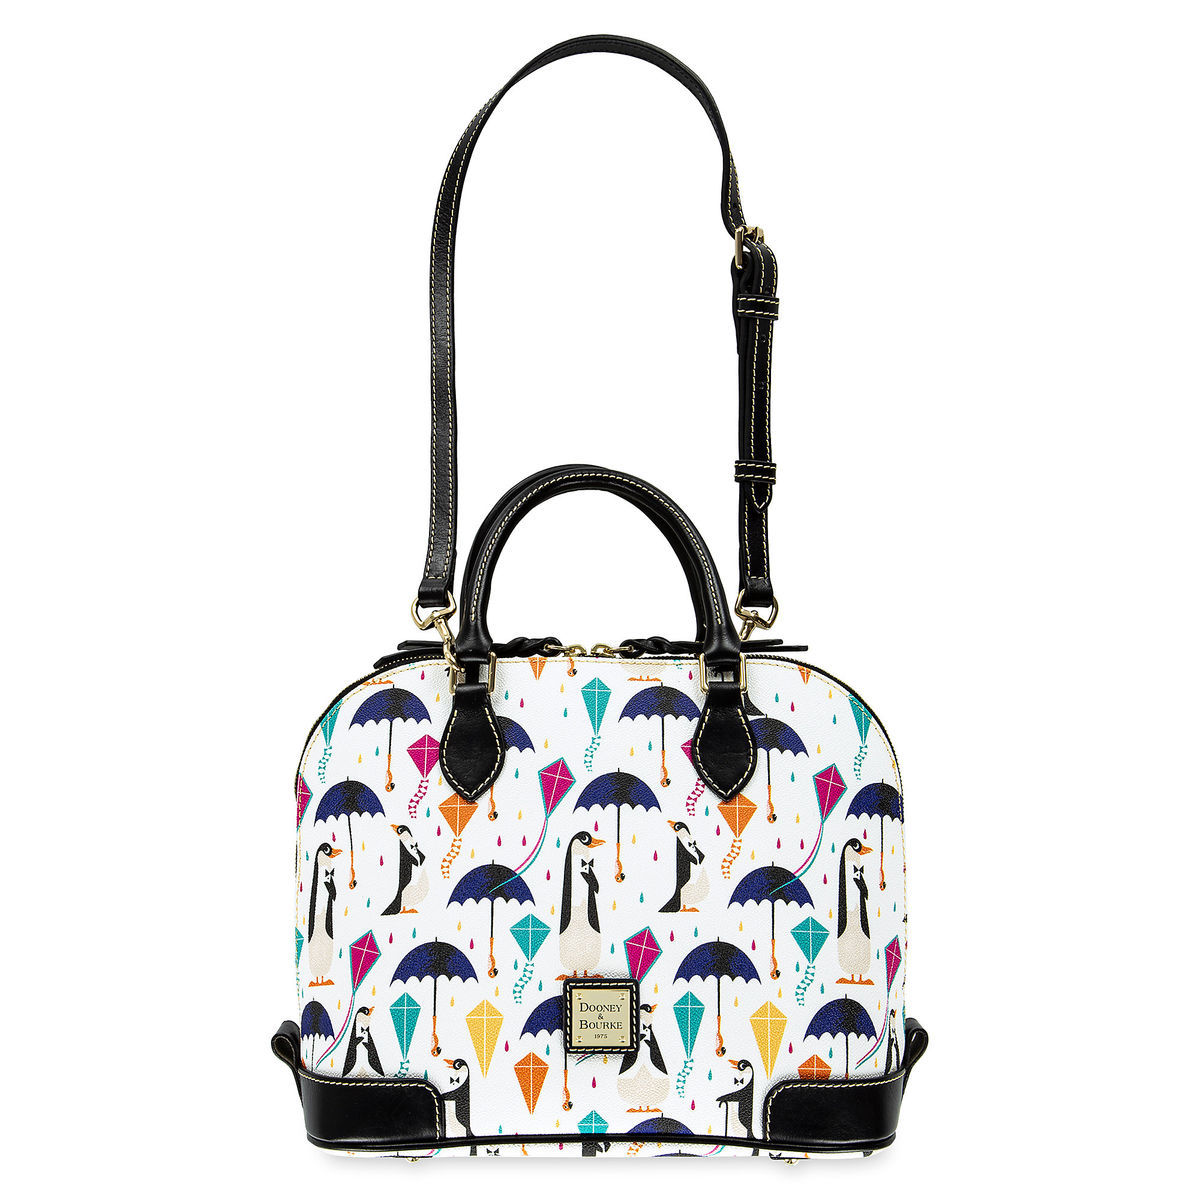 Disney Dooney & Bourke Bag - Mary Poppins Returns Satchel